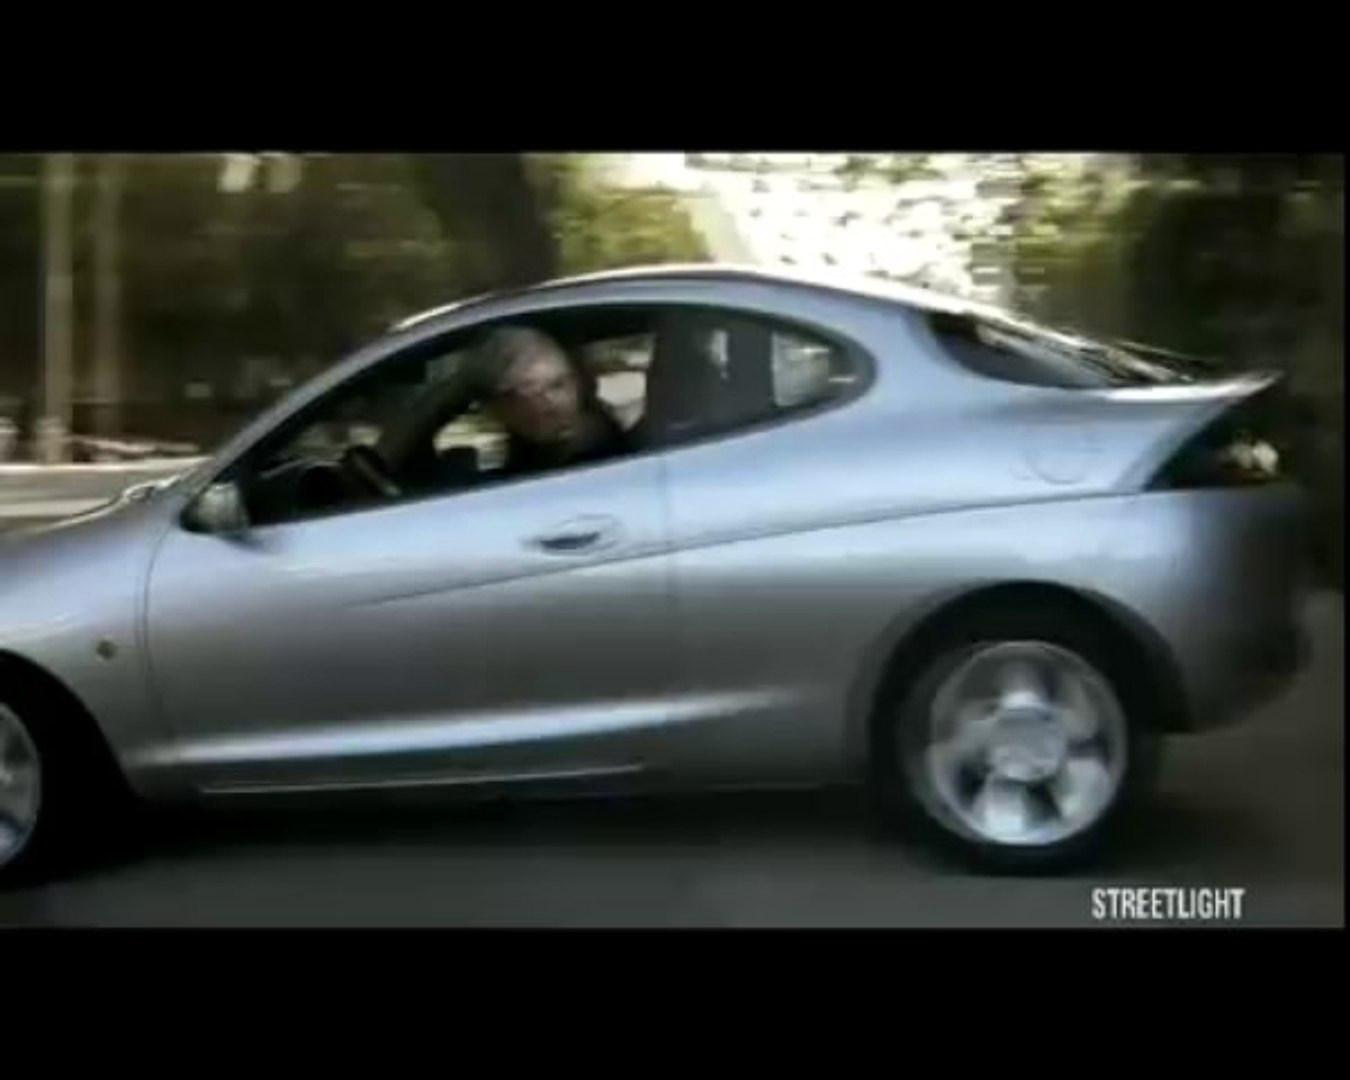 Ford Puma & Steve McQueen - Directed by Paul Street